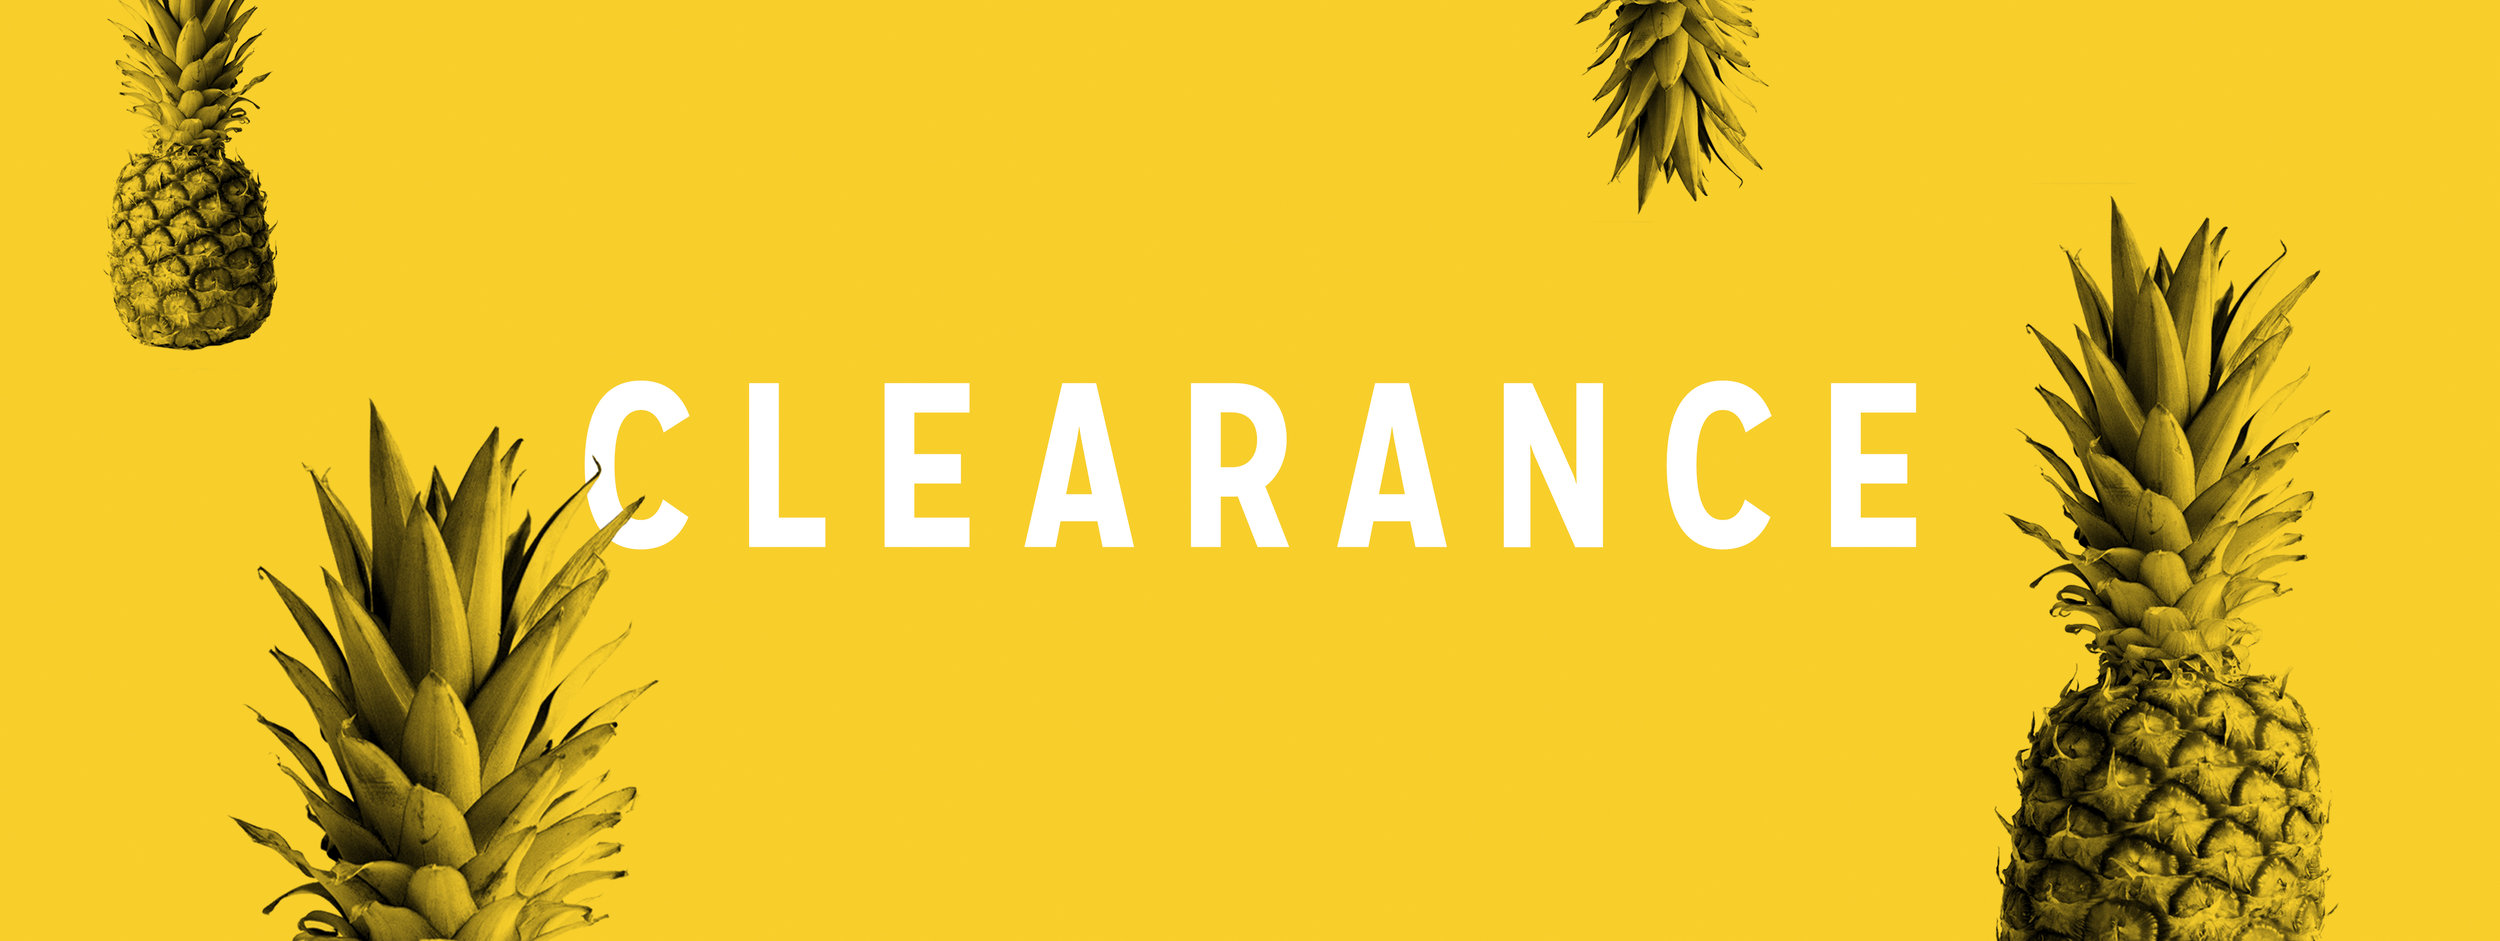 Clearance Page Header Image